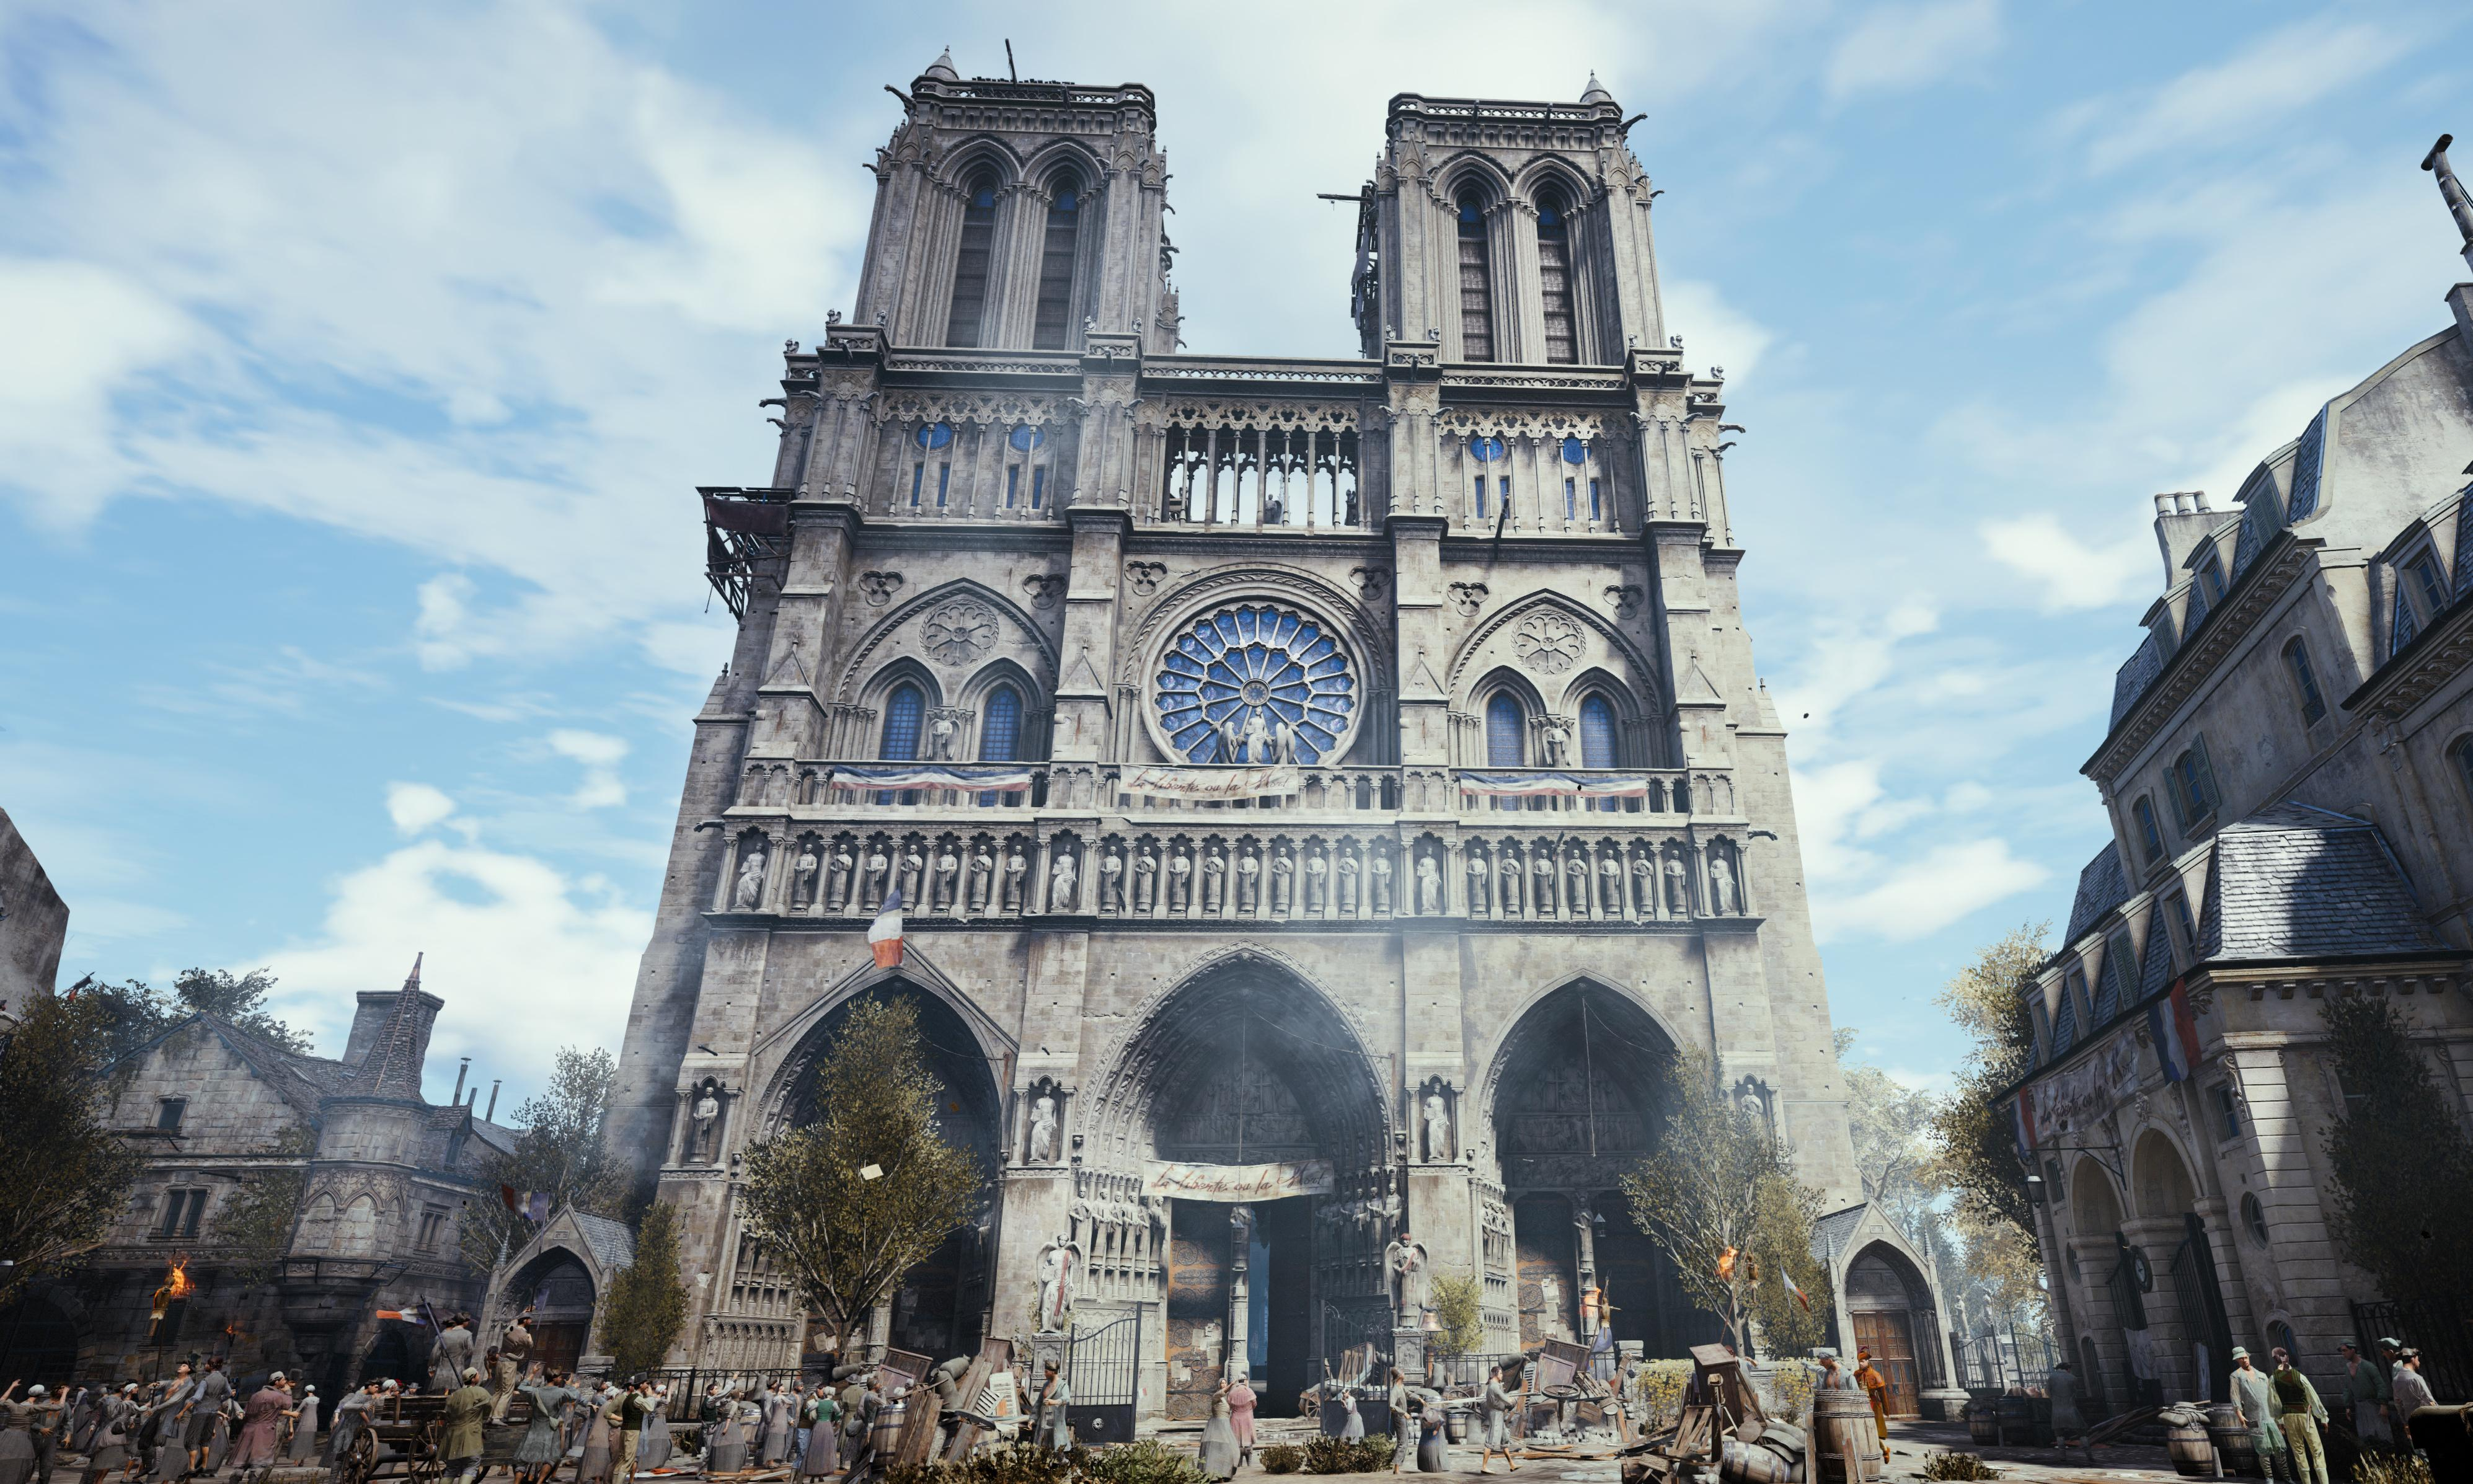 Assassin's Creed creators pledge €500,000 to Notre Dame